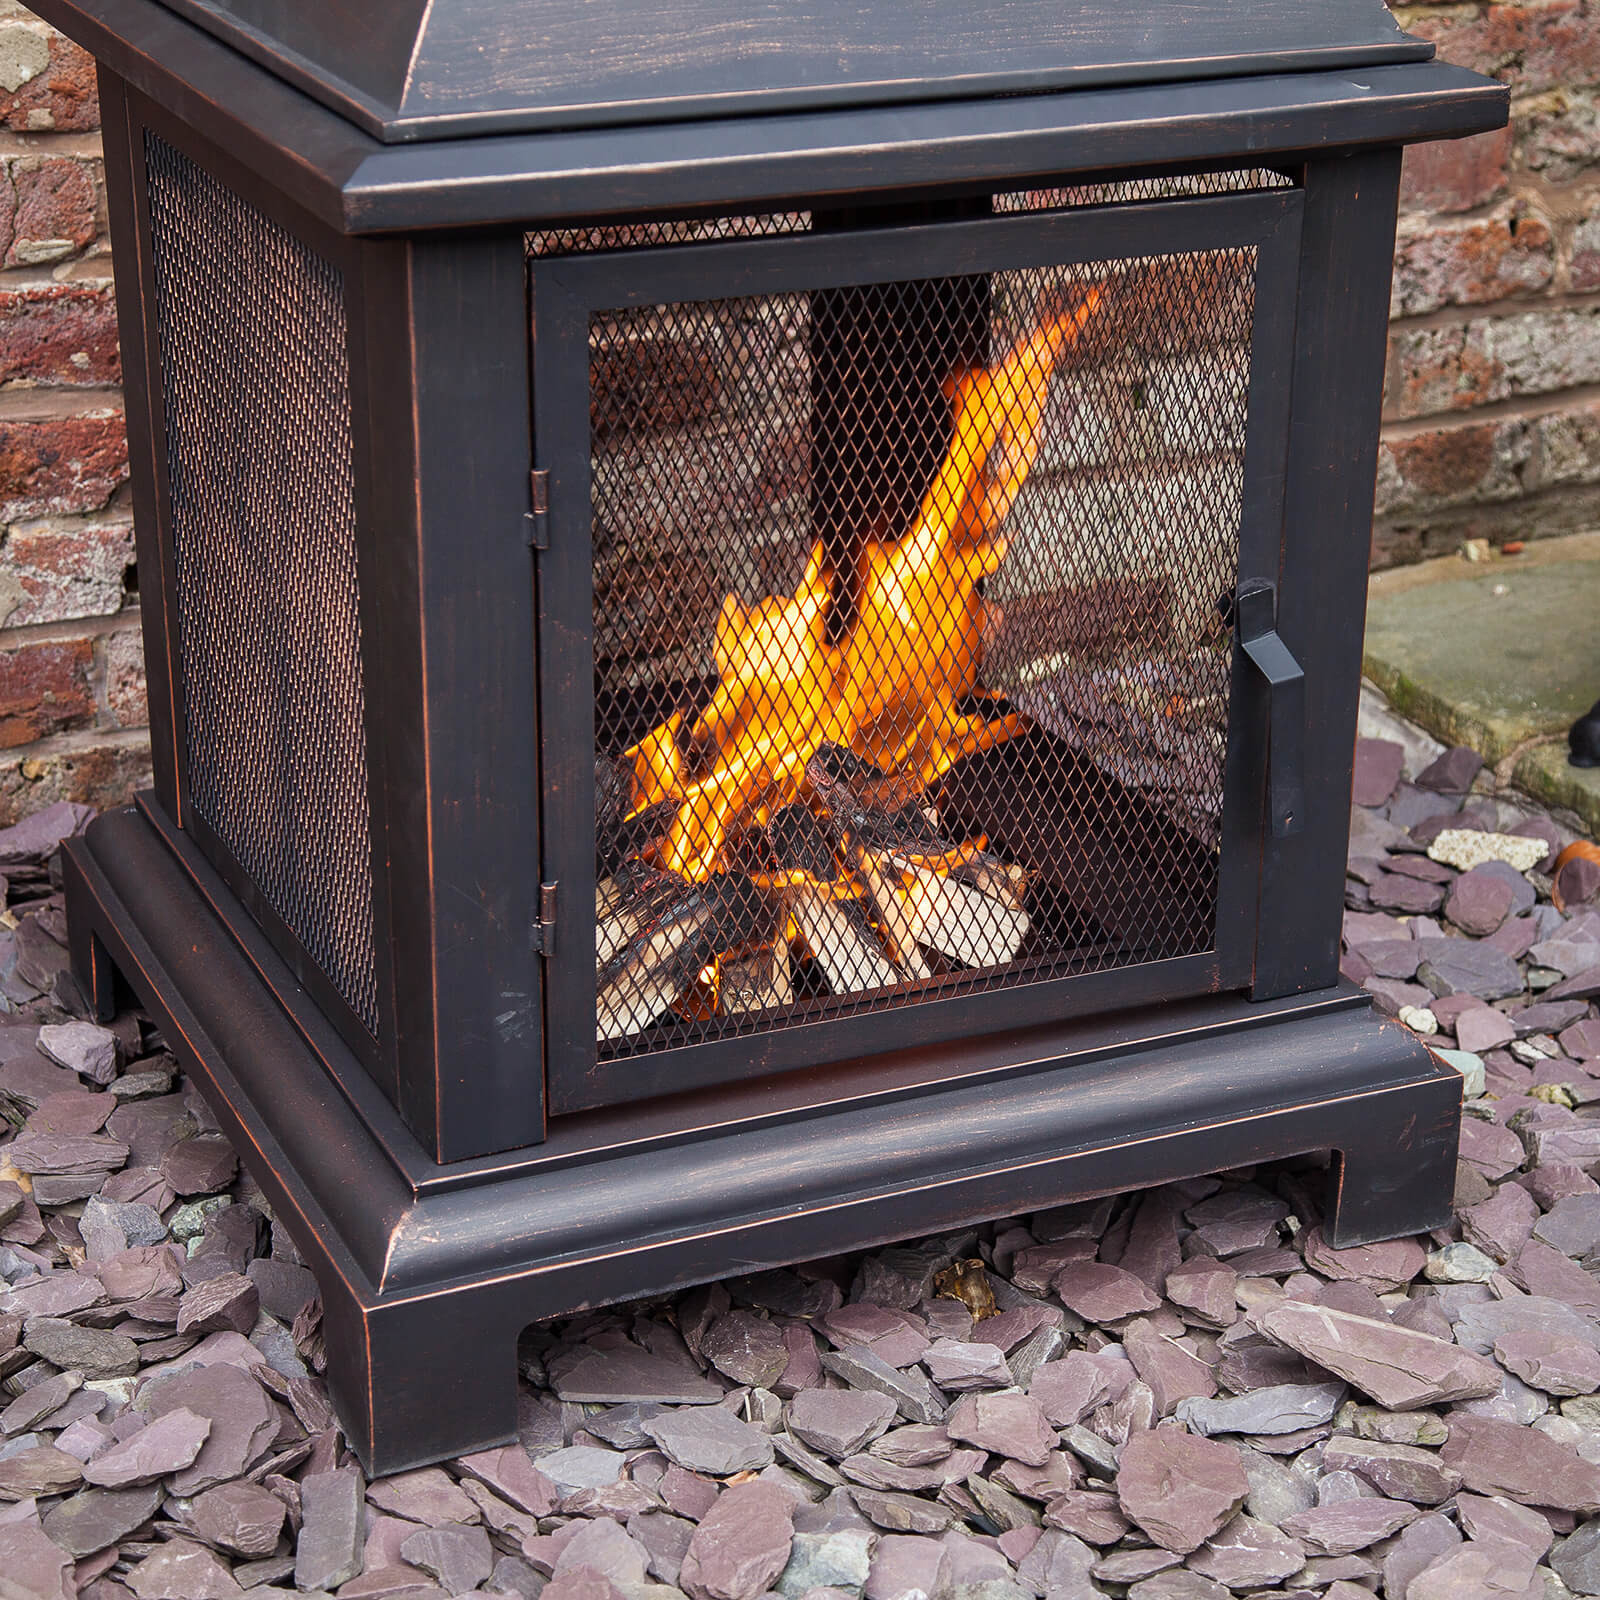 Caicos 40 Black Steel Lantern Log Burner Fire Pit pertaining to size 1600 X 1600